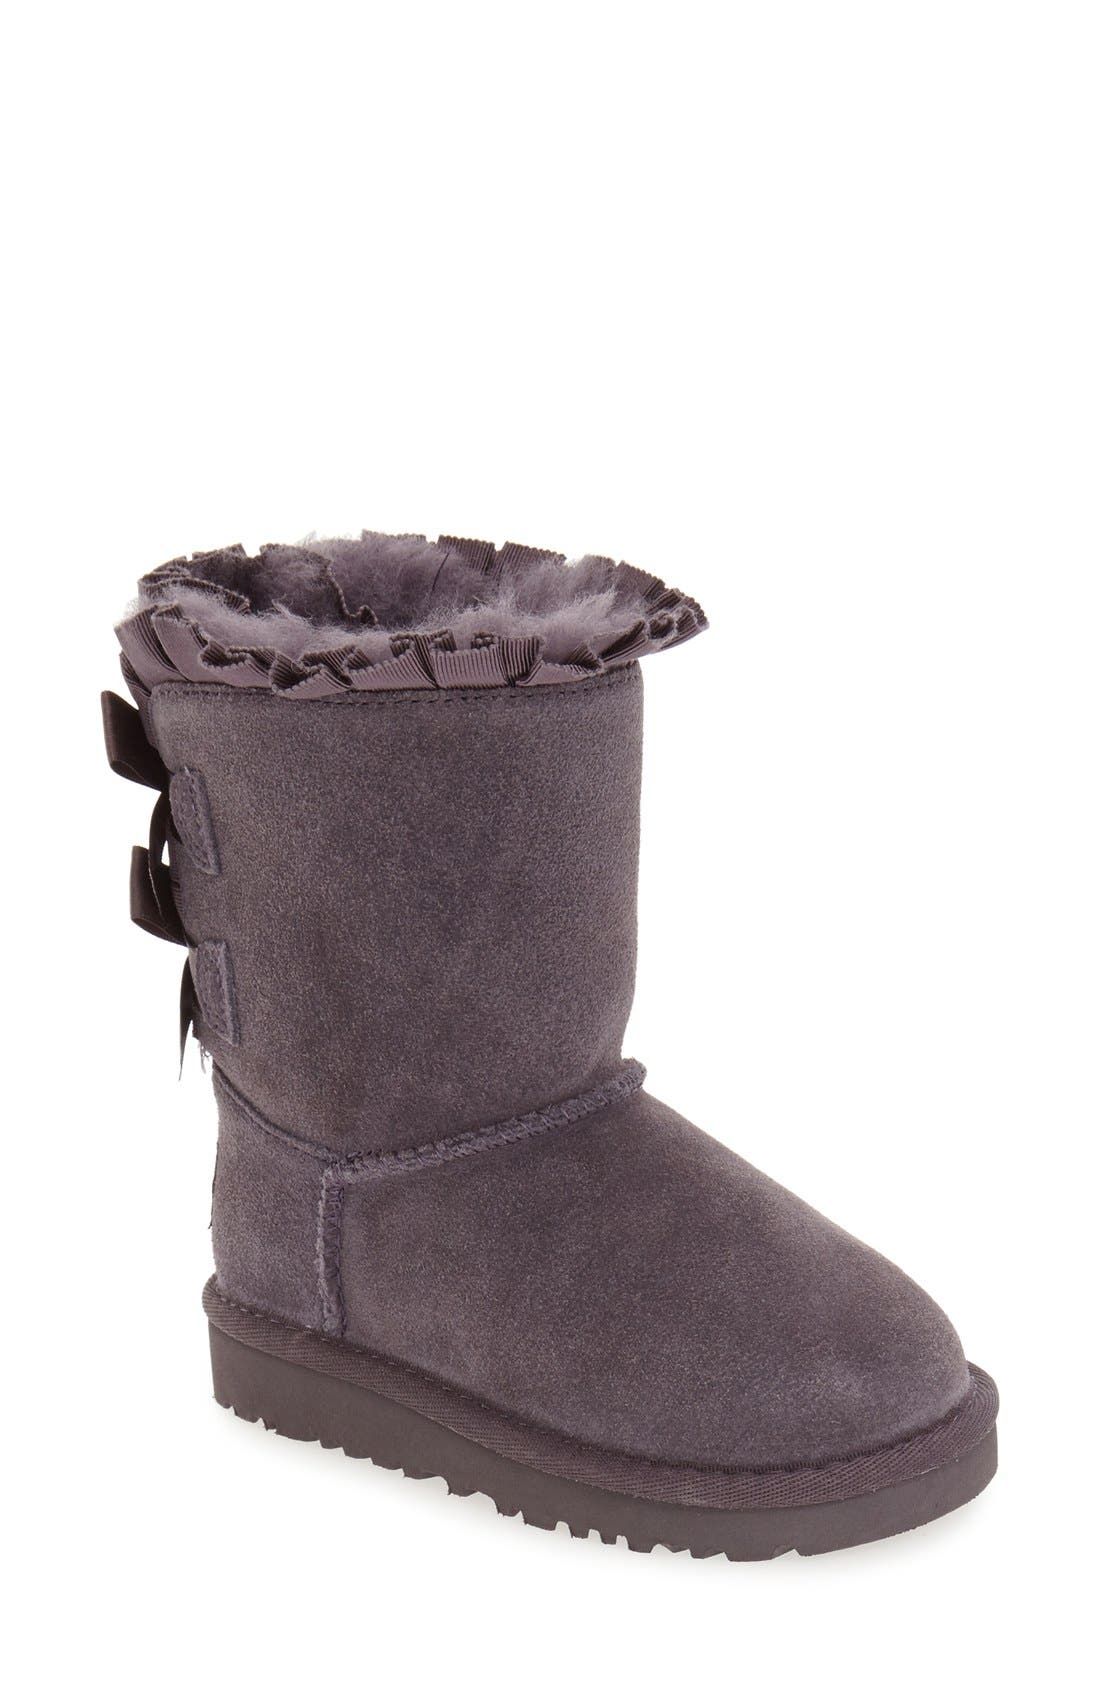 Main Image - UGG® 'Bailey Bow Ruffles' Genuine Shearling Lined Boot (Walker, Toddler & Little Kid)